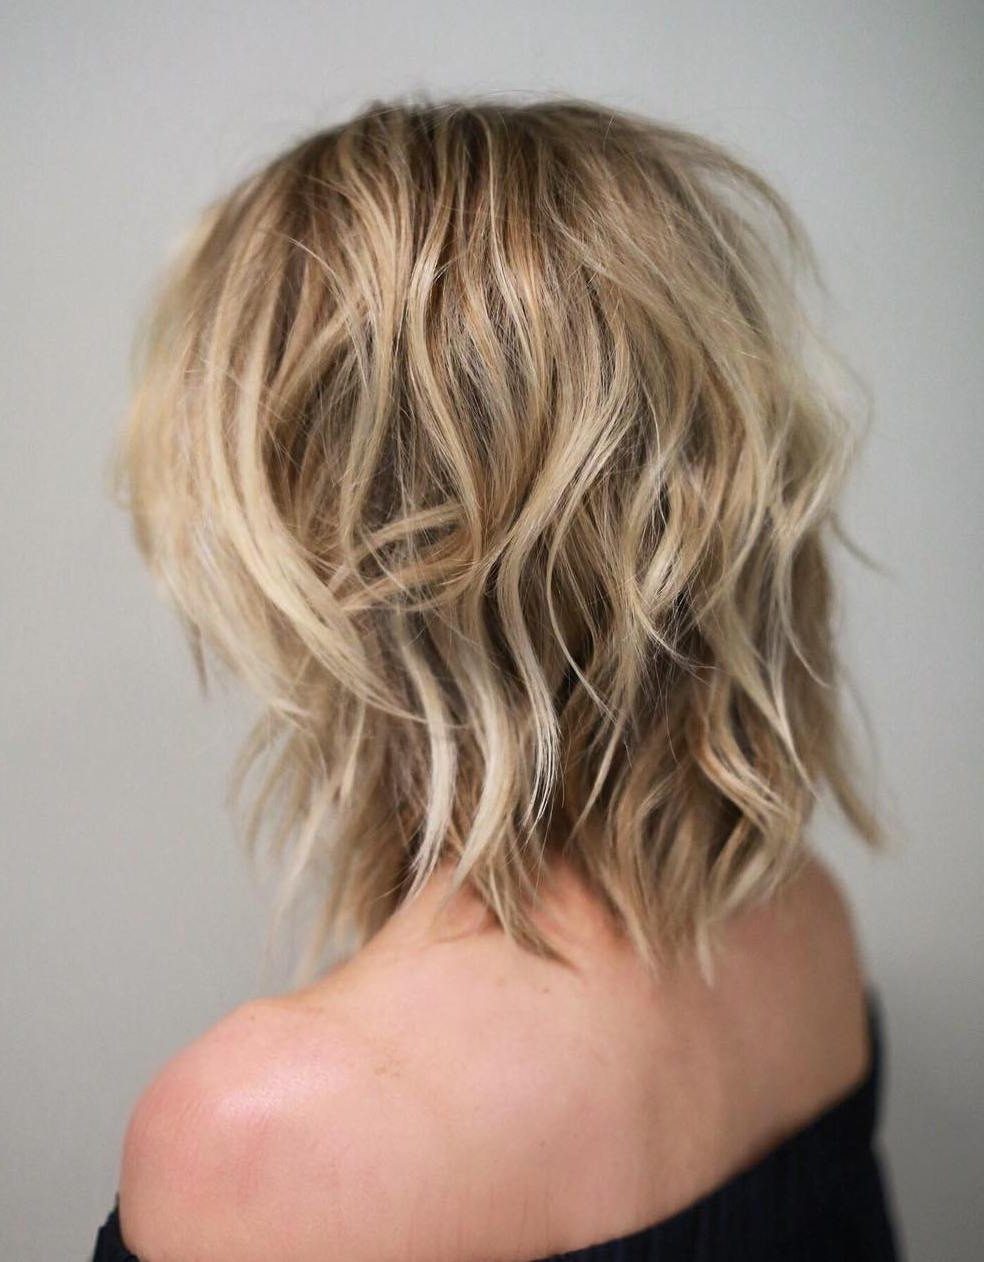 Famous Long Shag Haircuts With Extreme Layers With Shag Haircuts And Hairstyles In 2019 — Therighthairstyles (View 12 of 20)